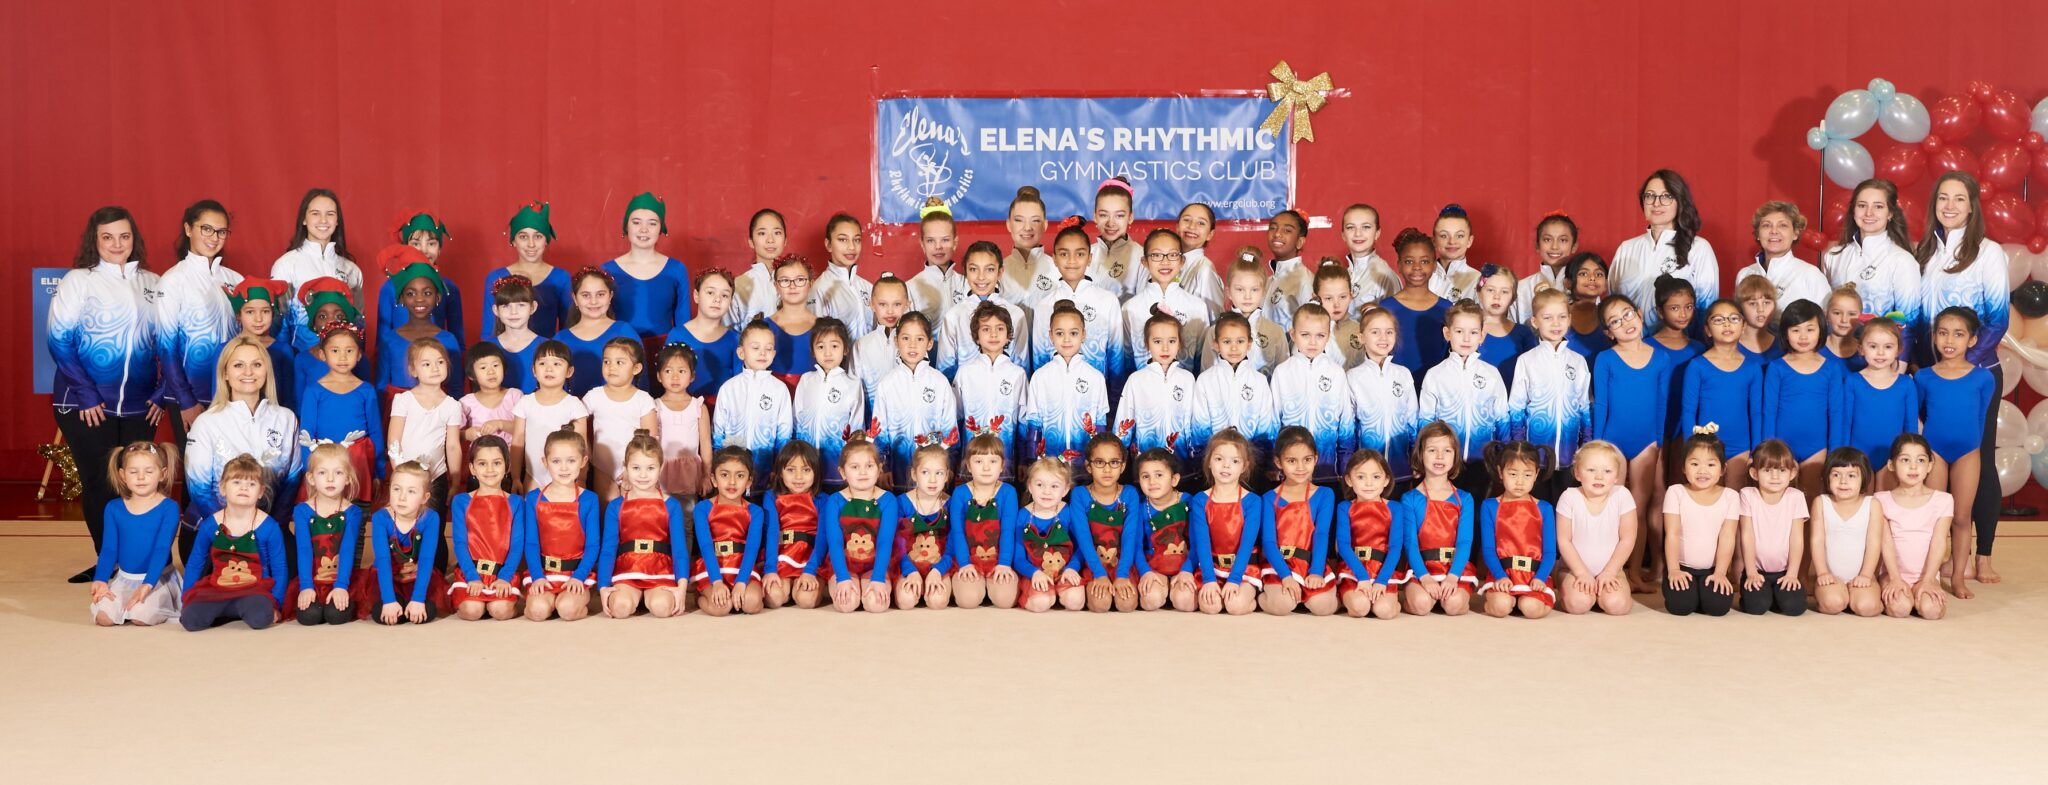 Elena's Rhythmic Gymnastics Club Photo 2019-2020